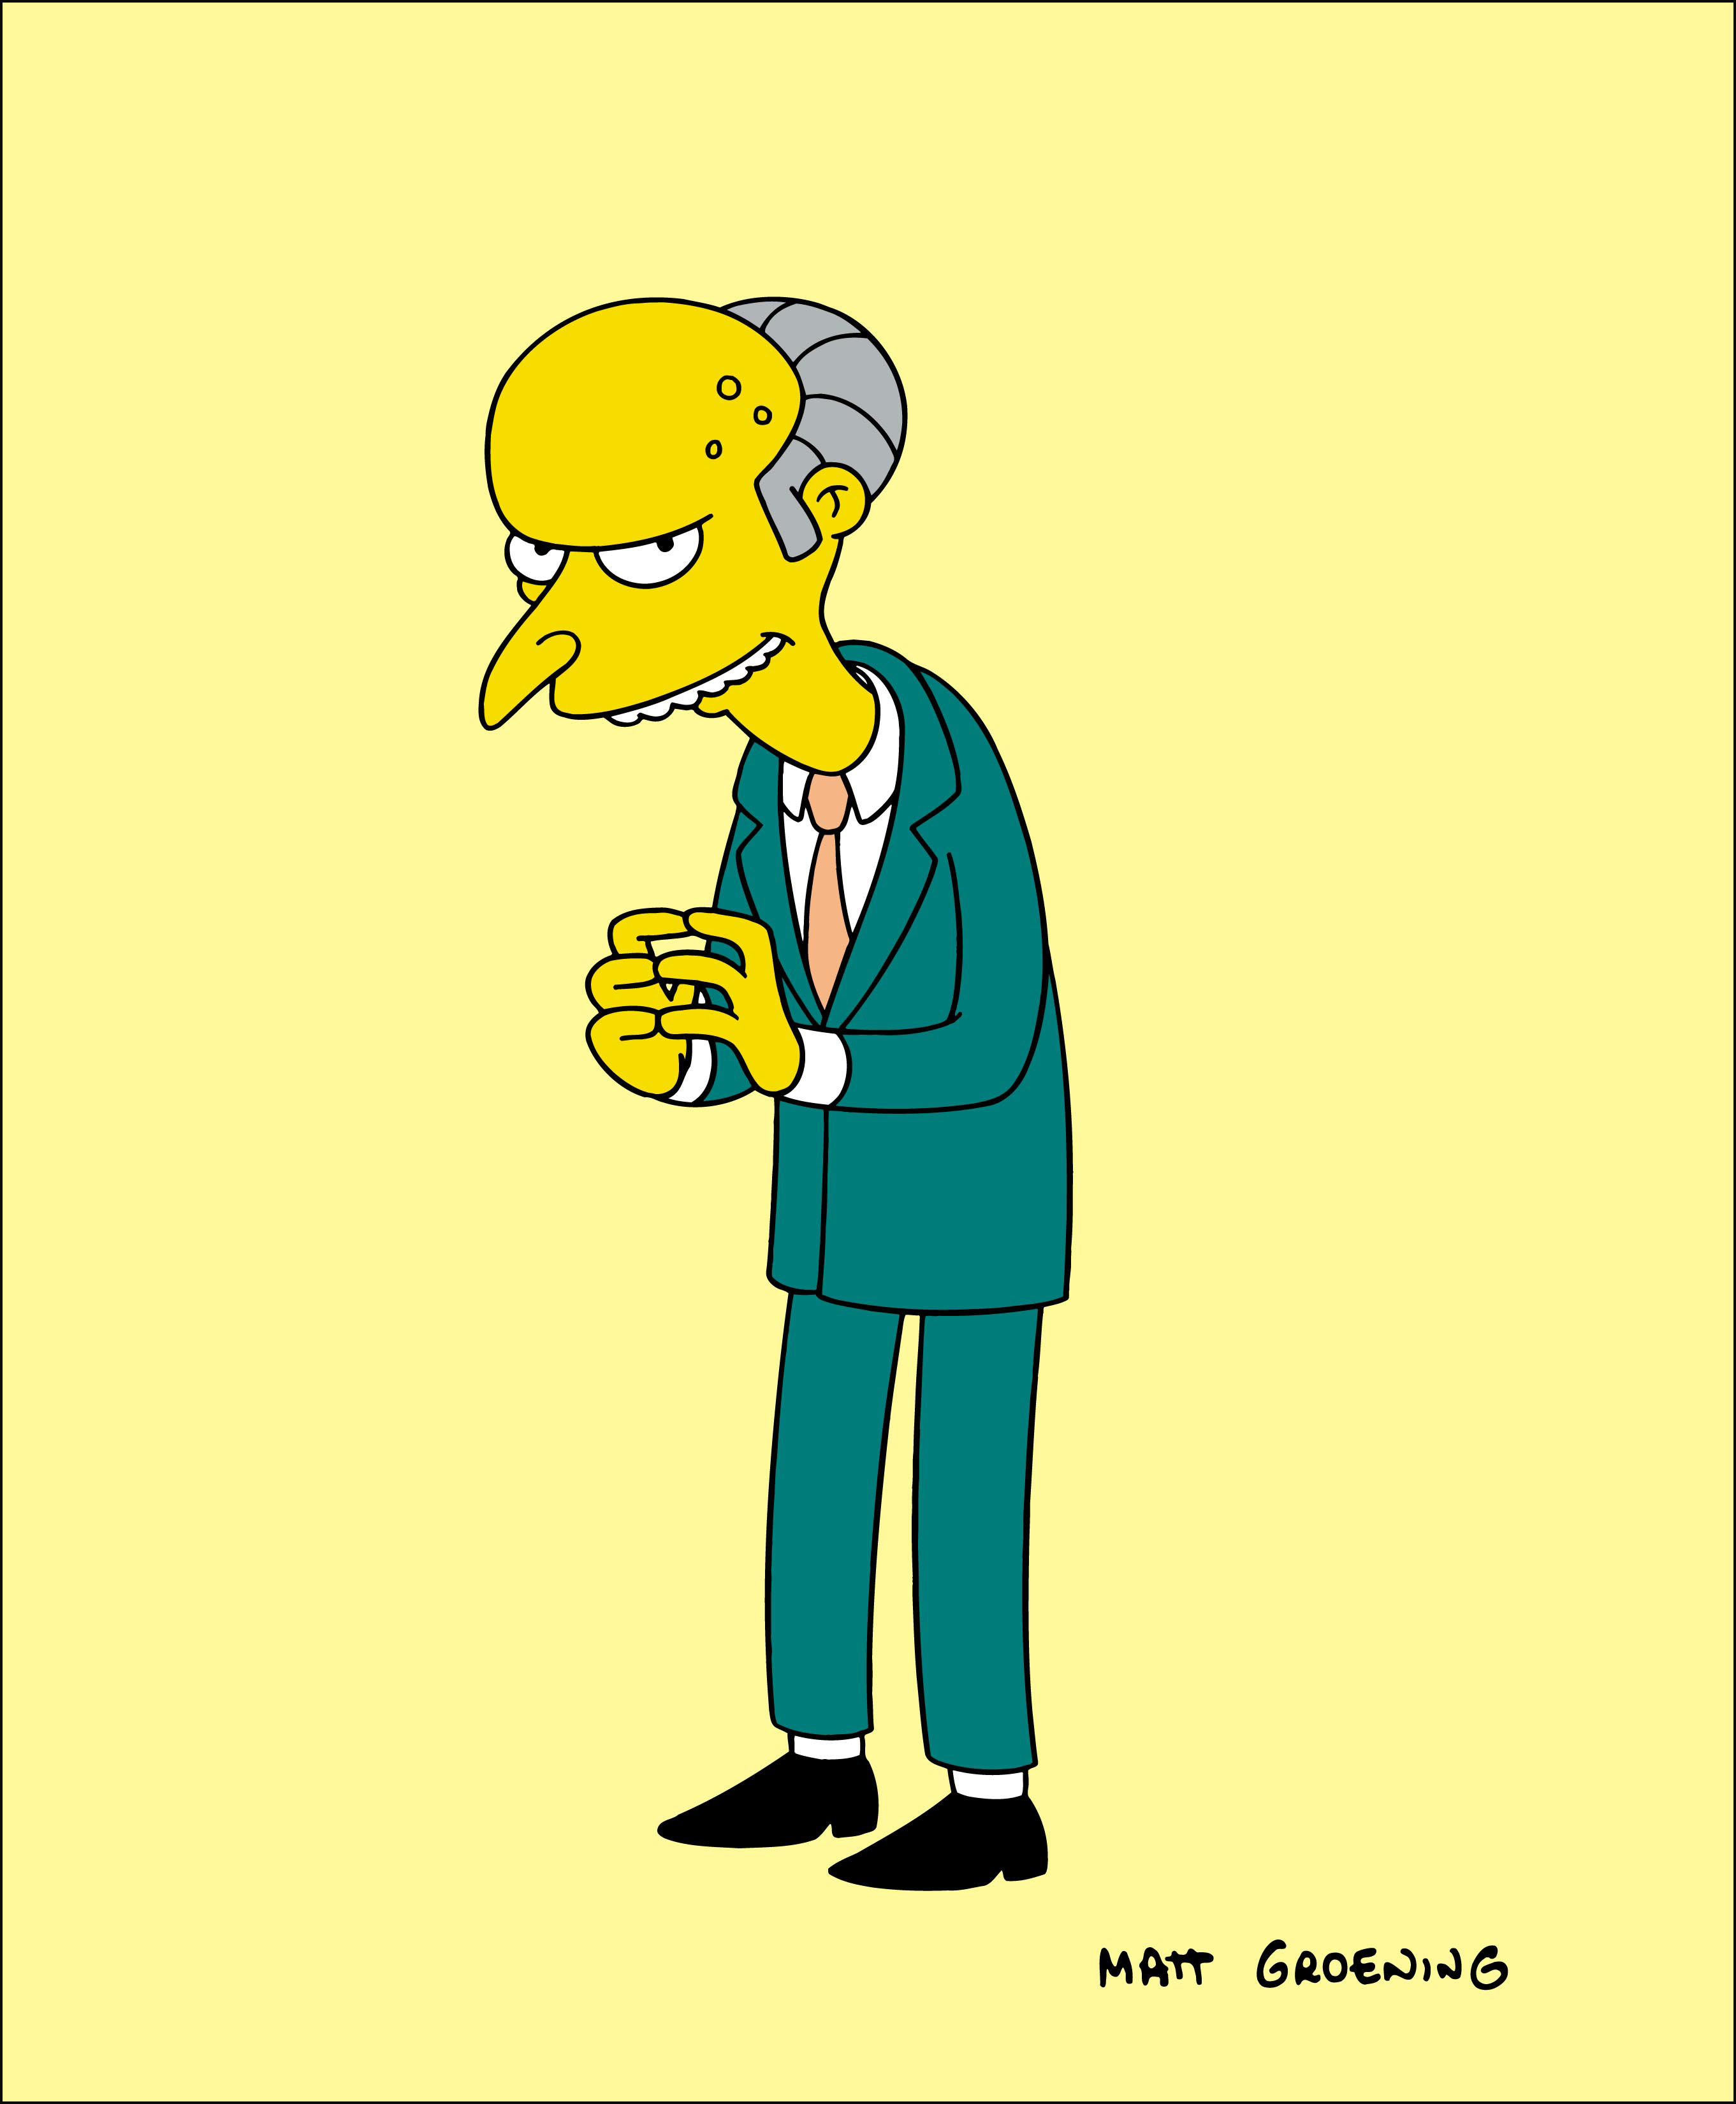 The simpsons montgomery Burns